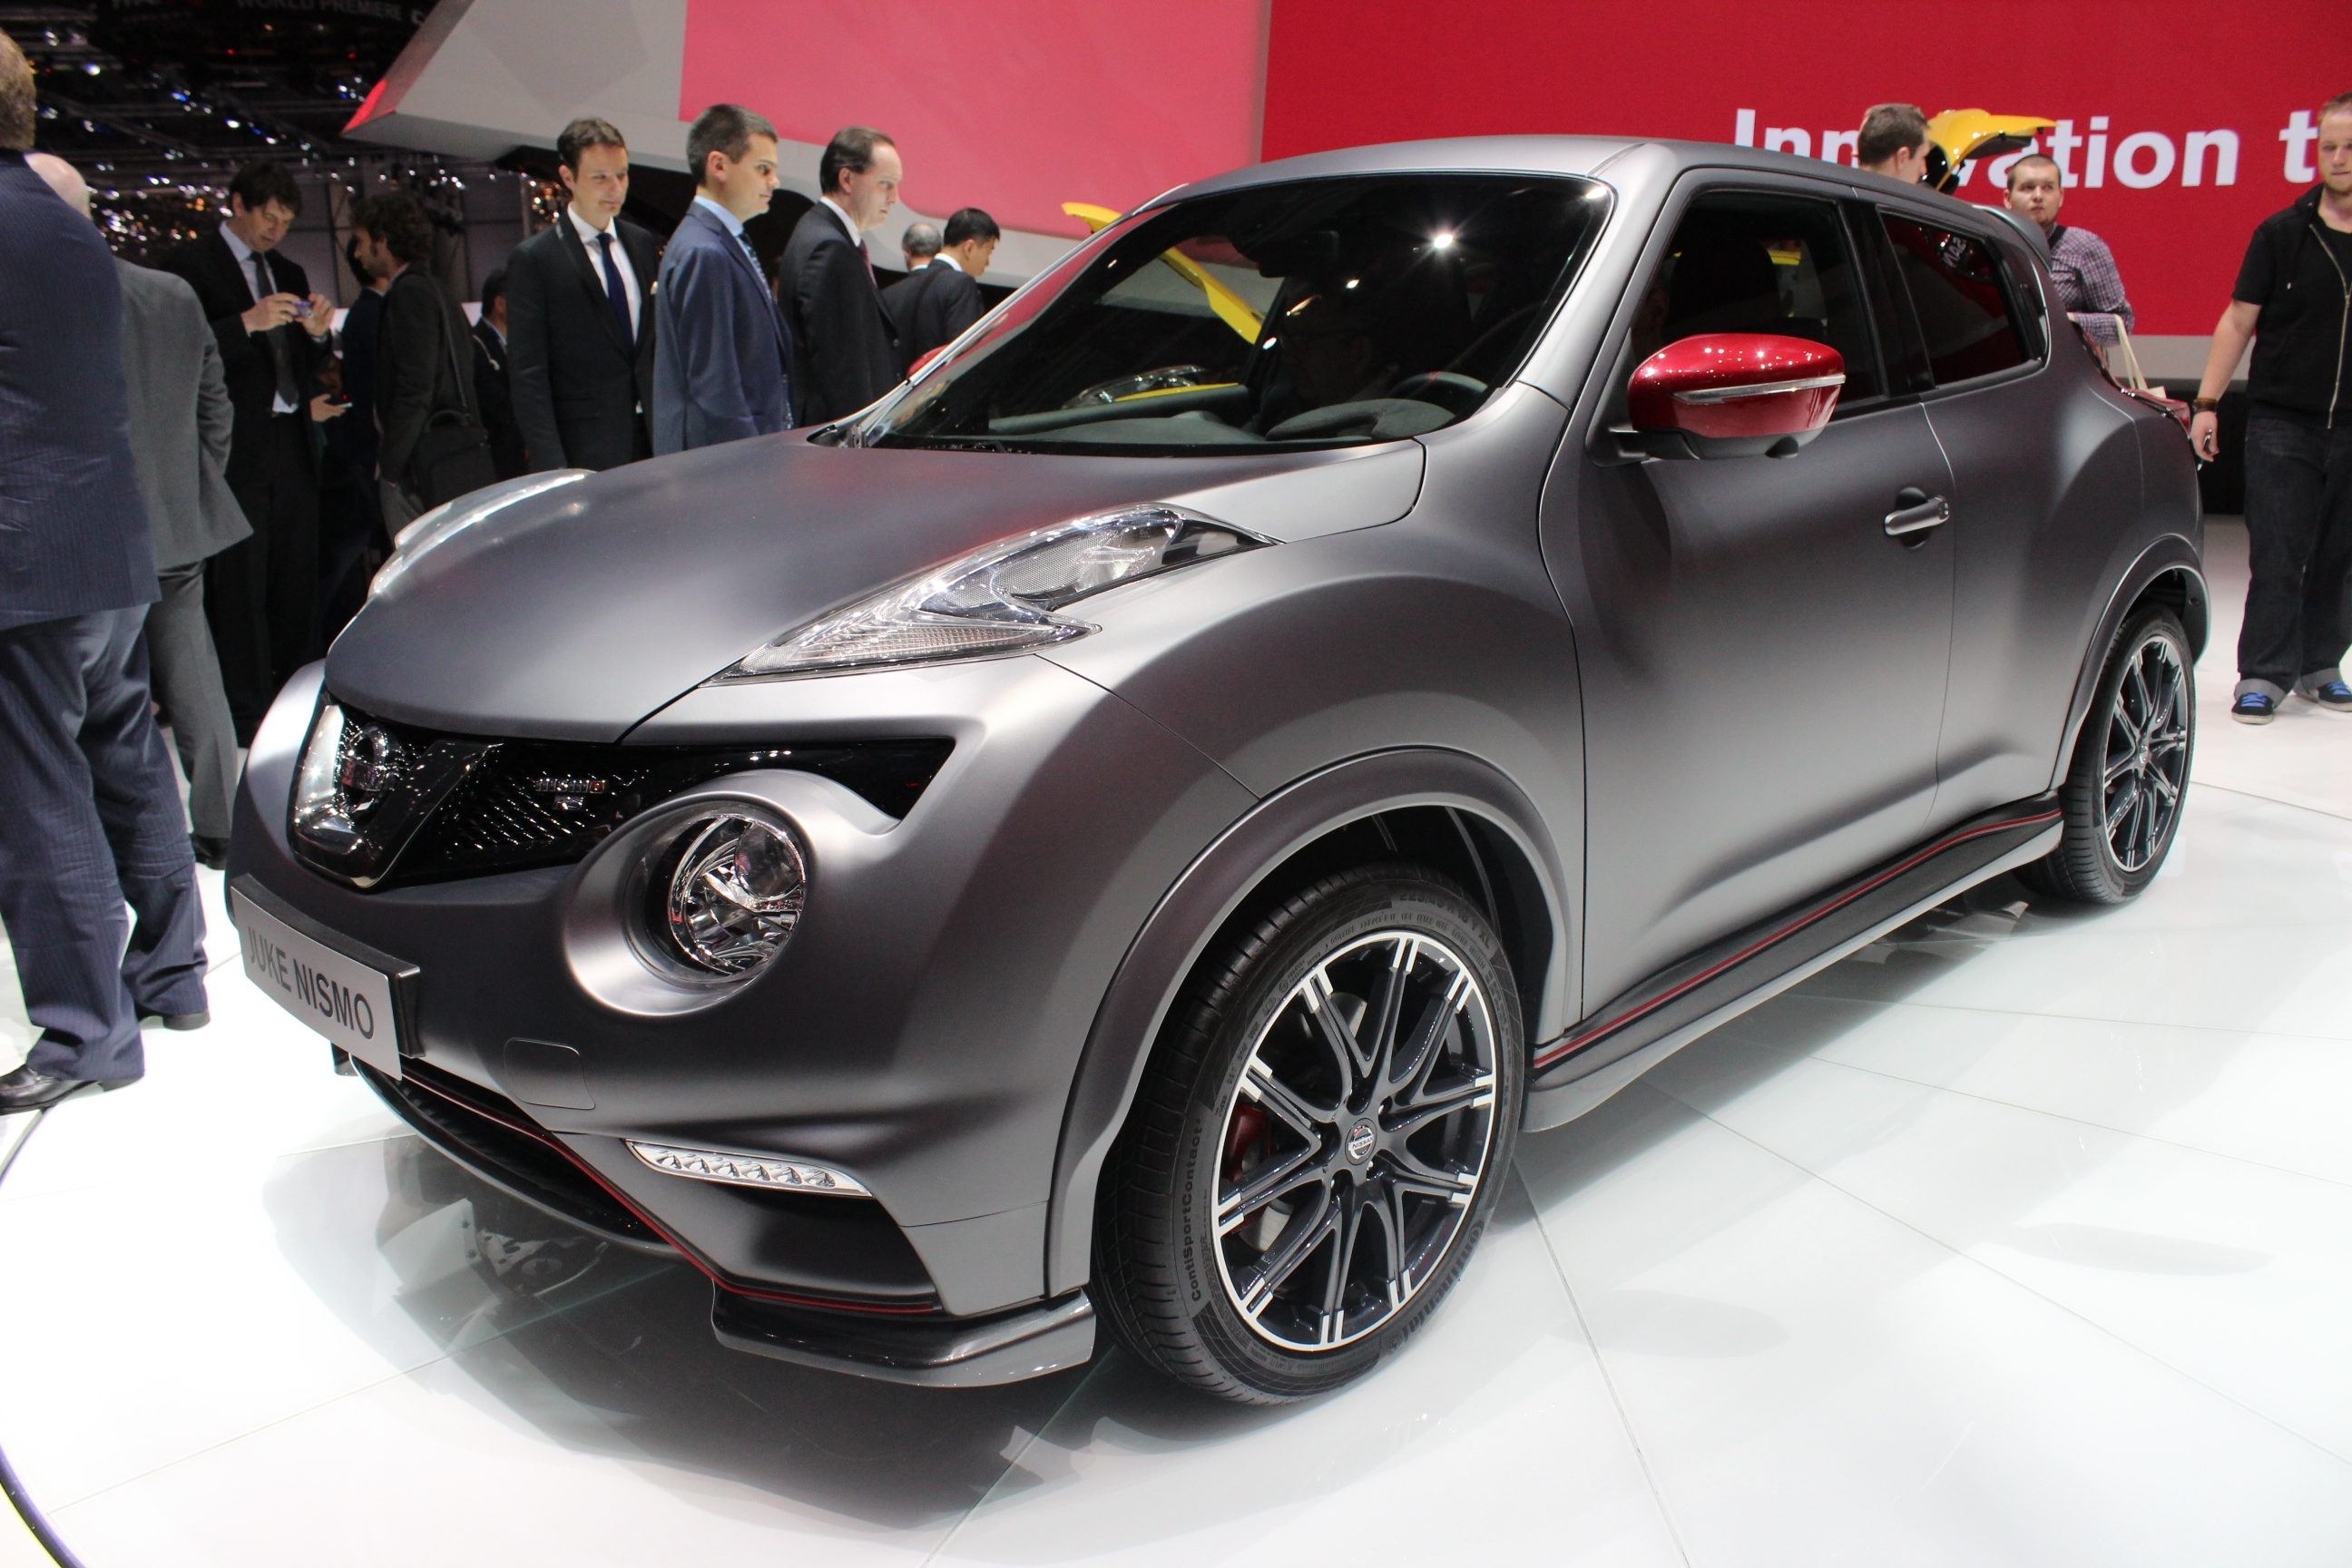 2014 nissan juke nismo rs dark cars wallpapers. Black Bedroom Furniture Sets. Home Design Ideas